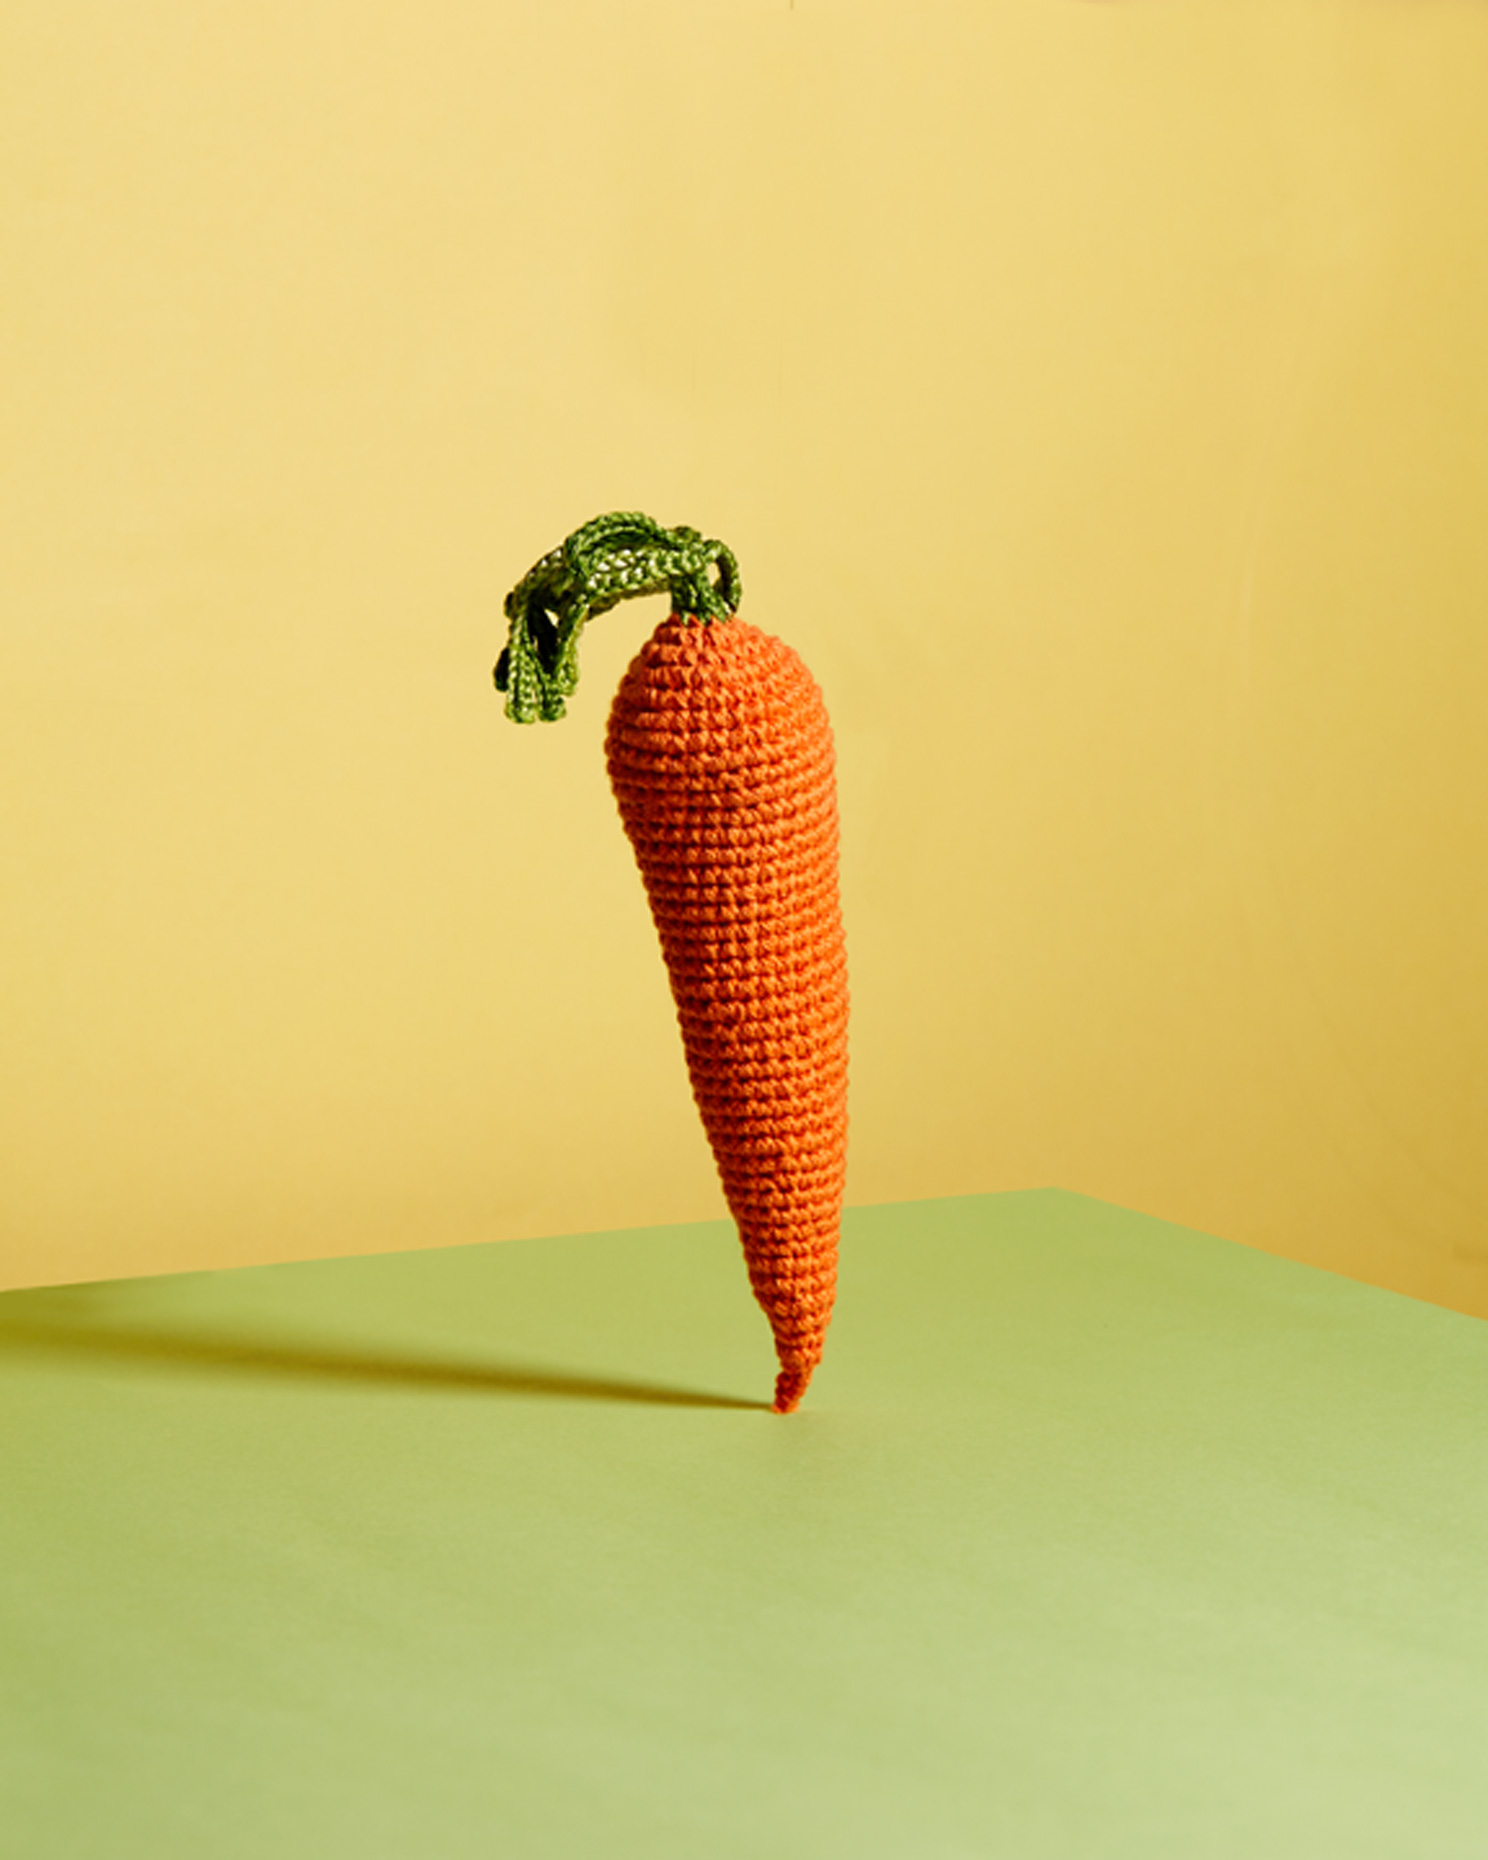 creative still life: carrot